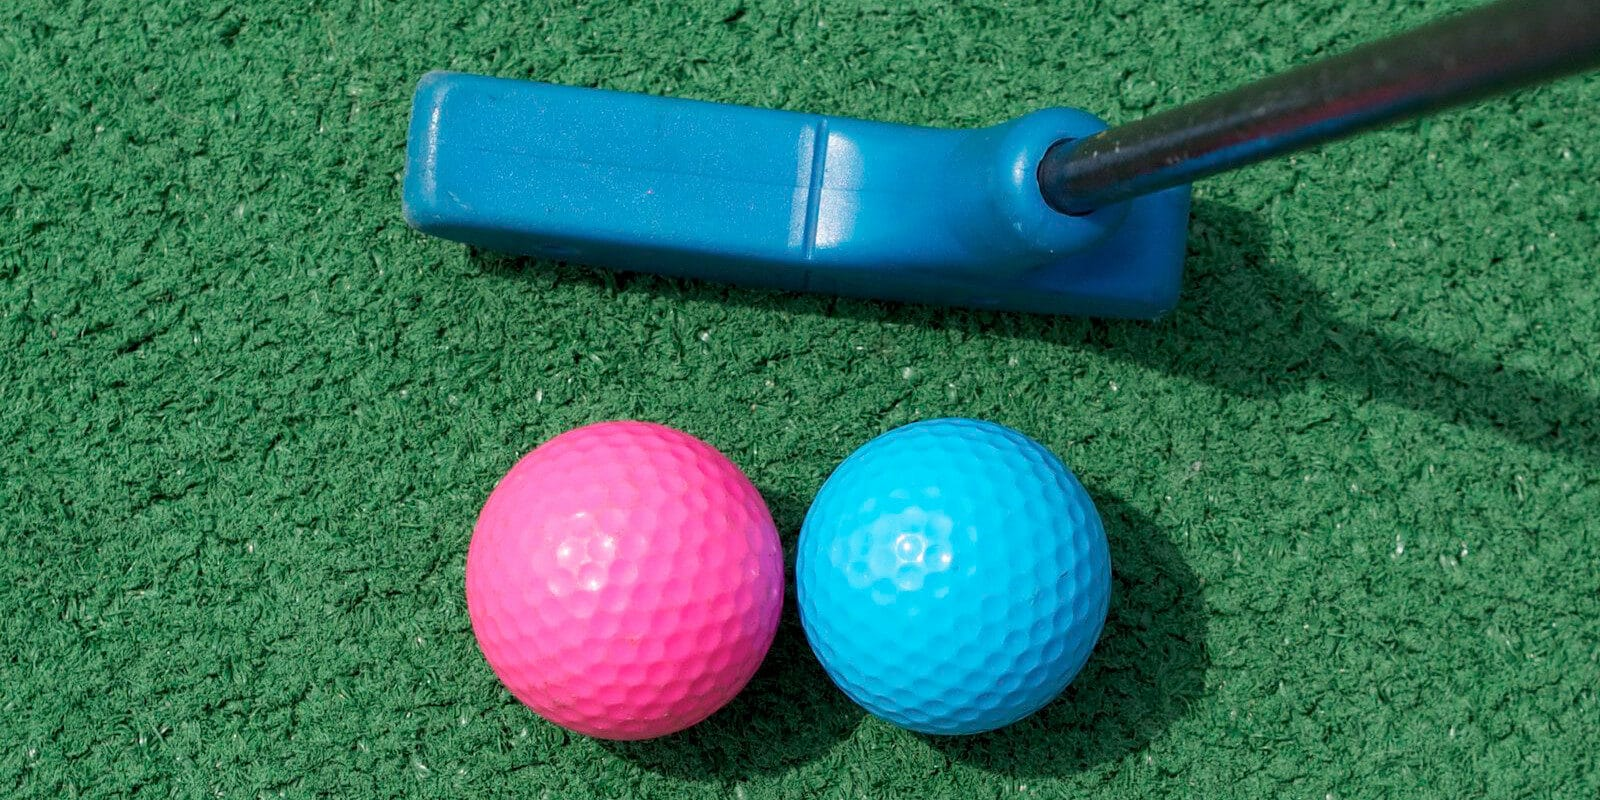 Image of a pink and blue golf ball and blue putter